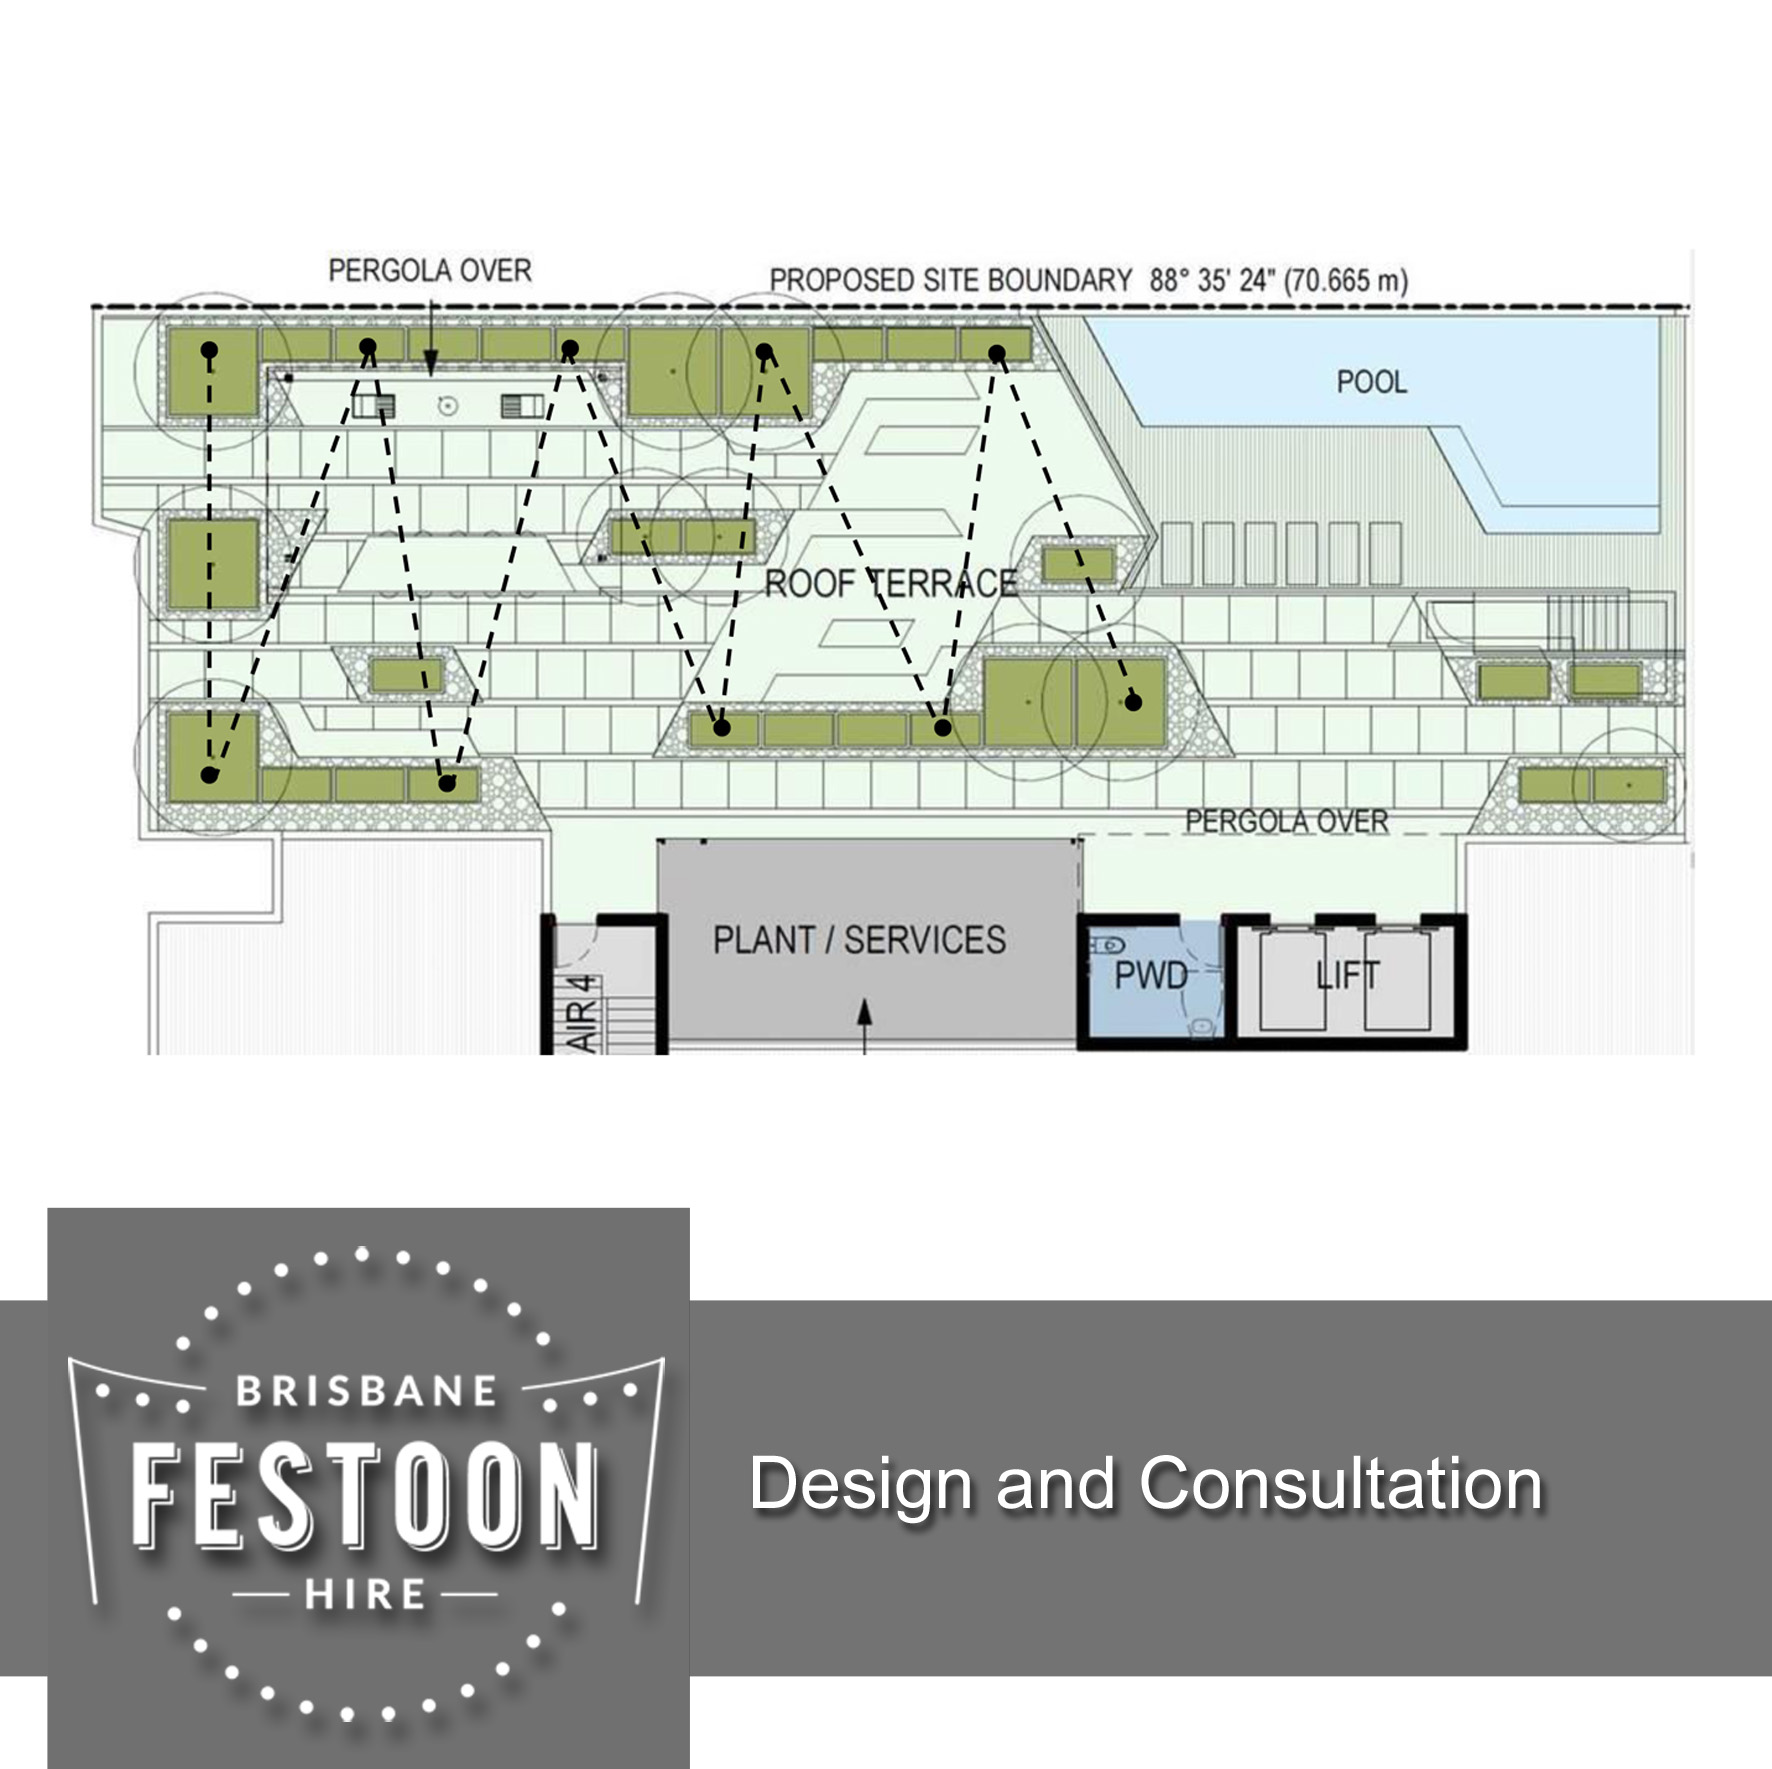 Brisbane Festoon Hire - Design and Consultation BLK 3.jpg